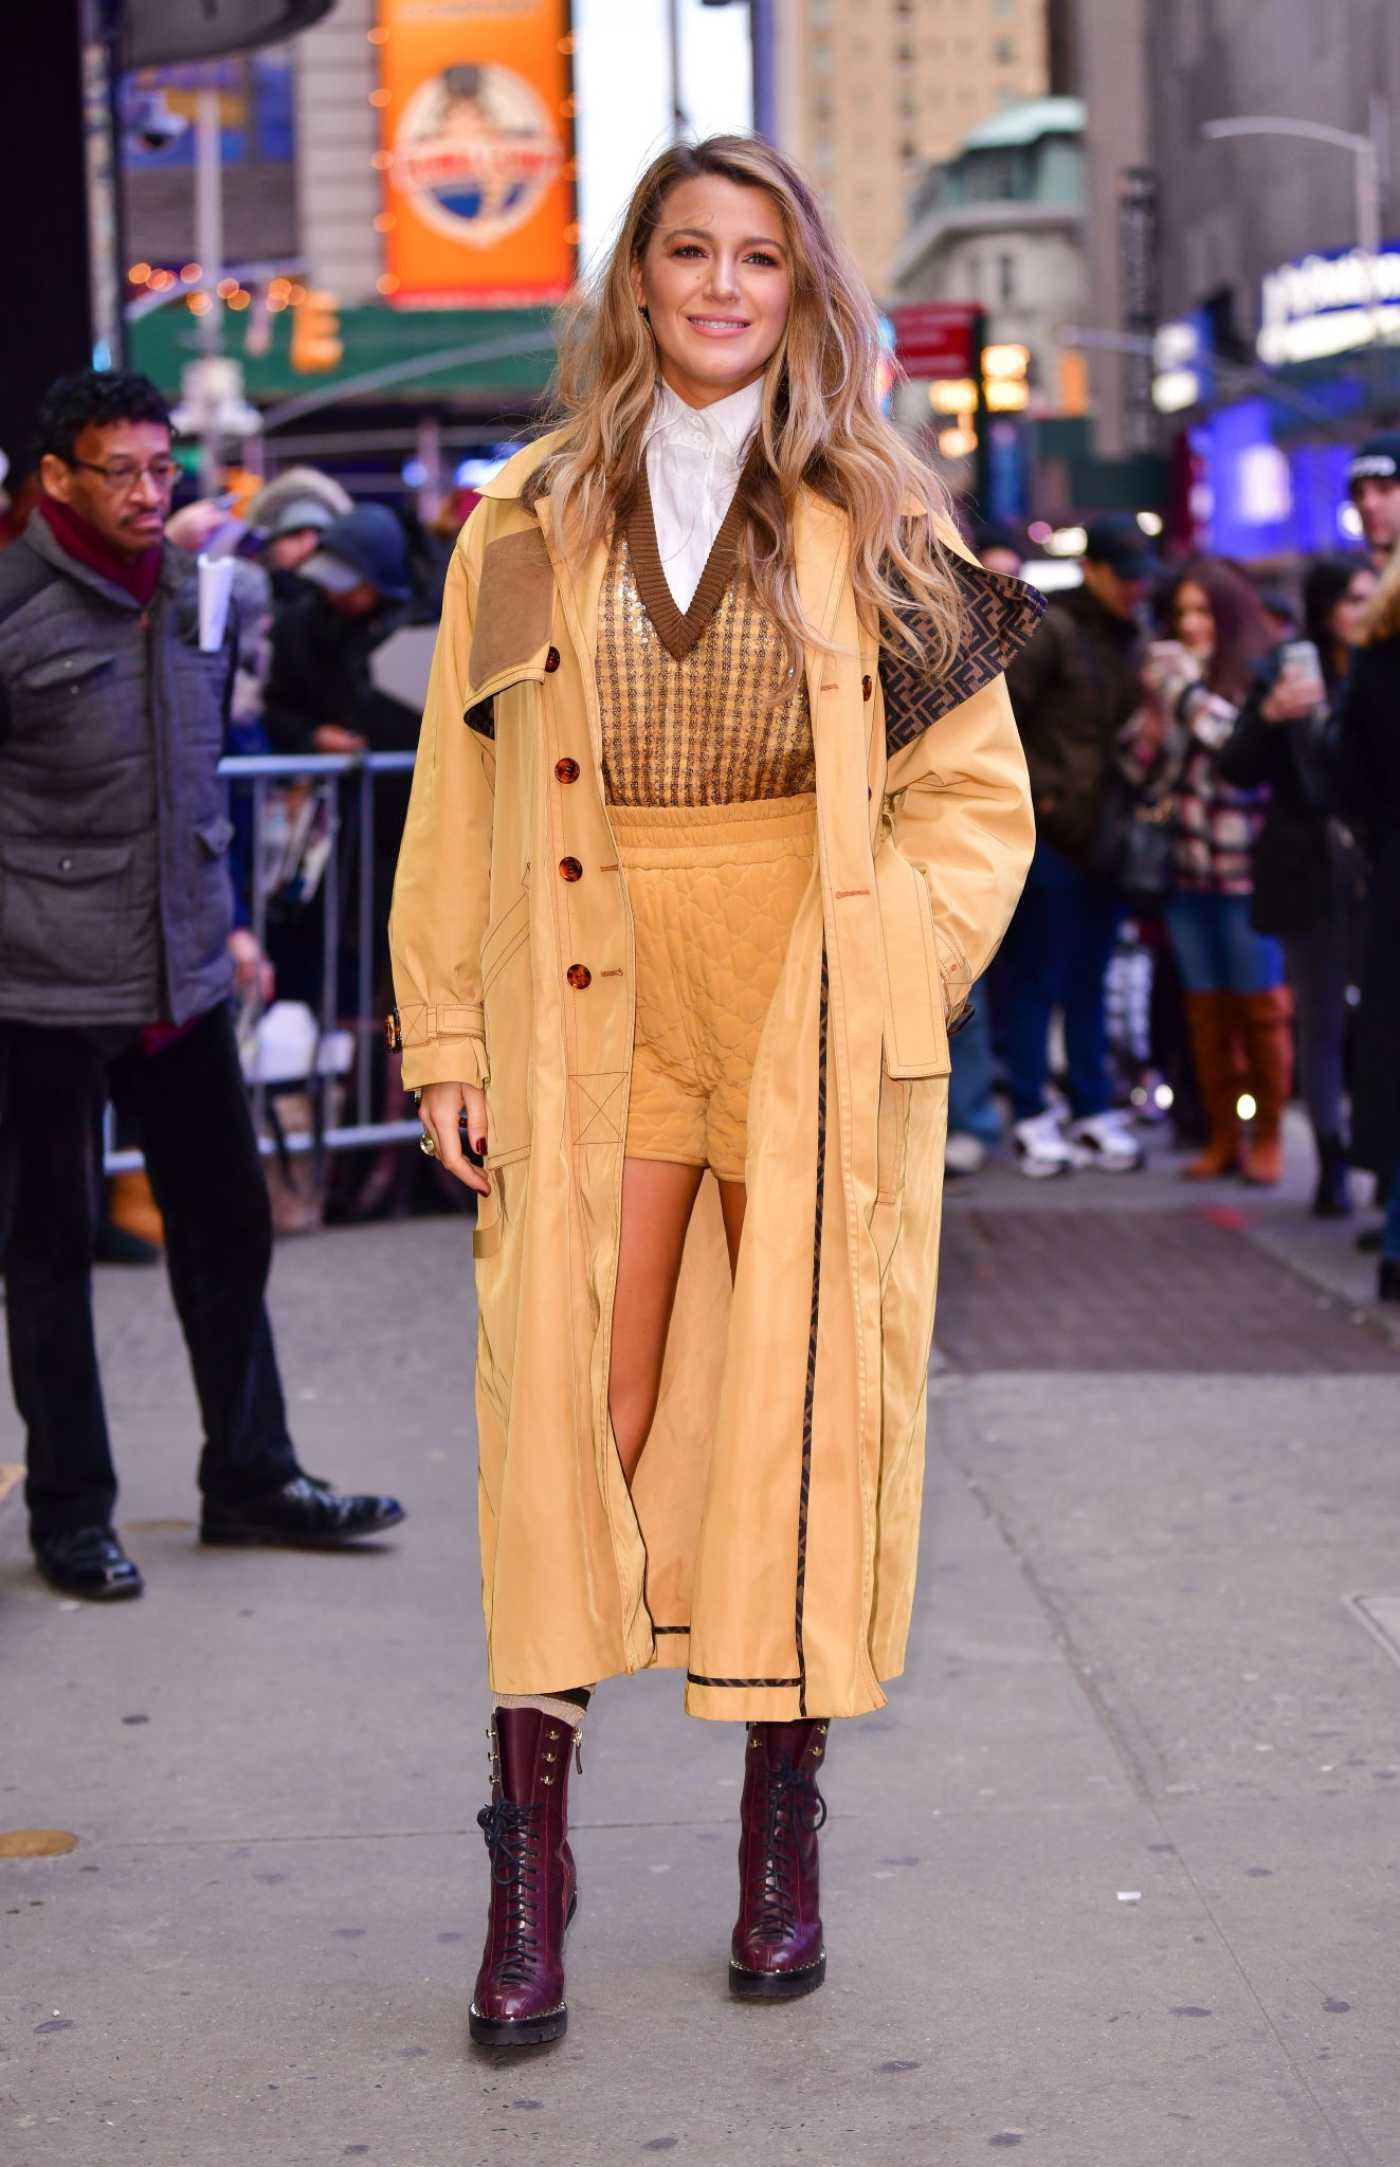 Blake Lively in a Yellow Trench Coat Arrives at ABC's Good Morning America in New York 01/28/2020